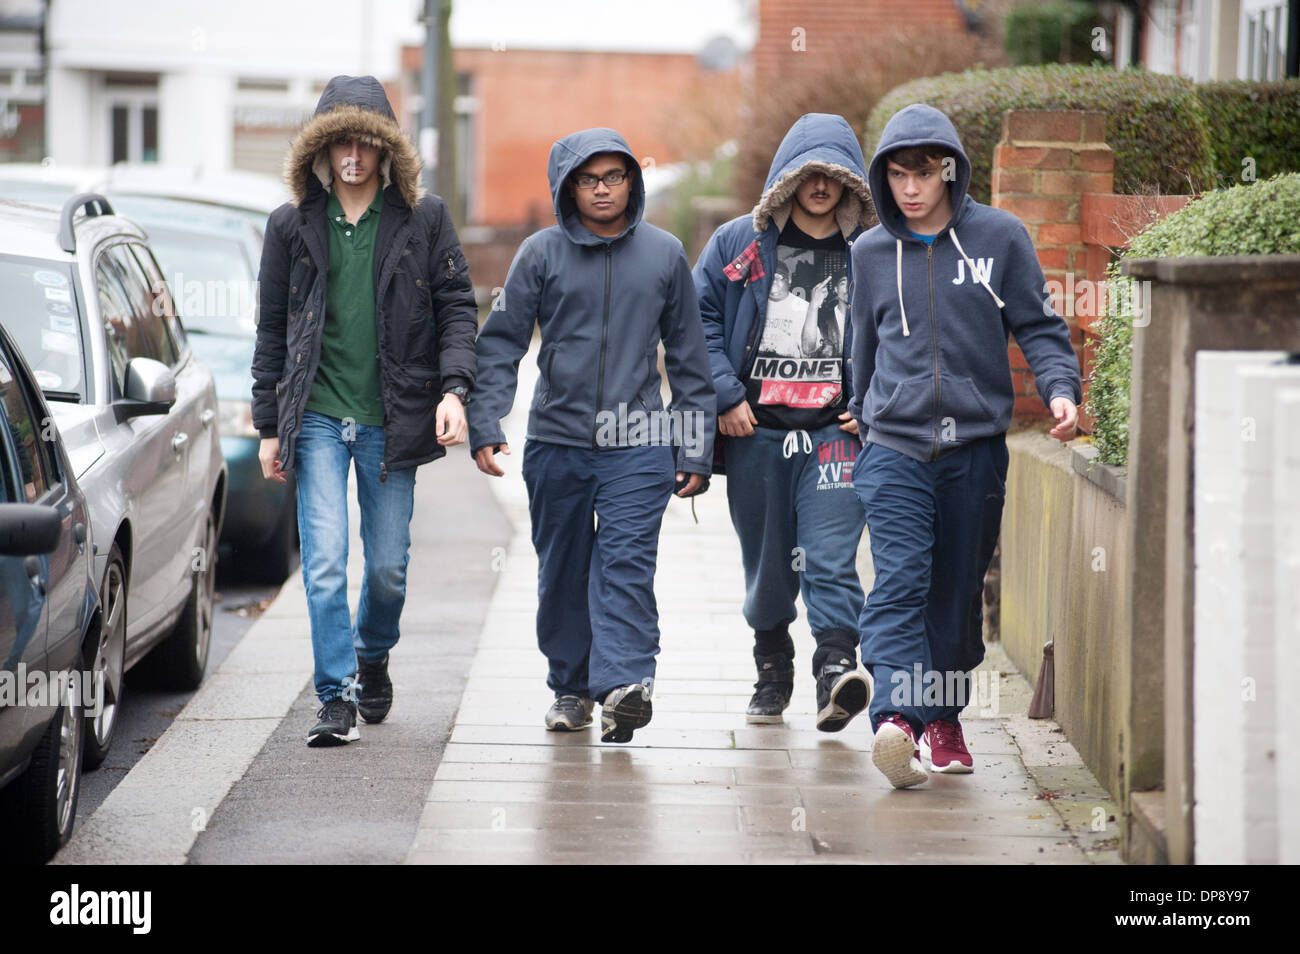 A Group Of Teenage Boys In Hoodies Walking Together Down A